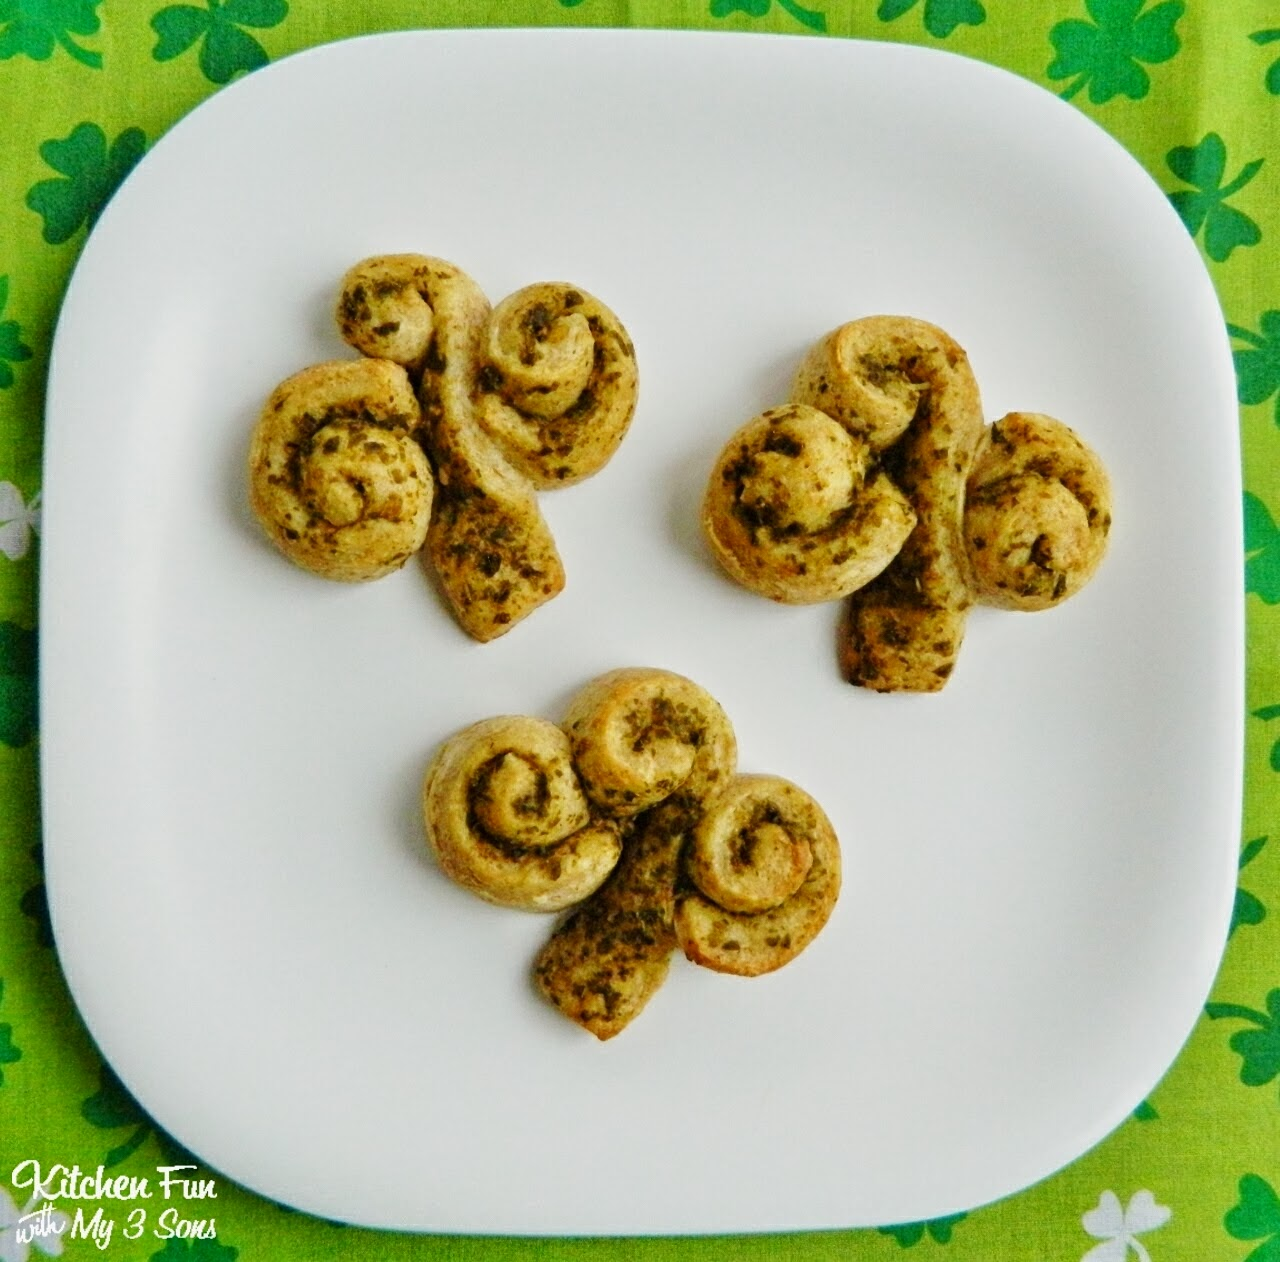 Fast and Easy Shamrock Rolls for St. Patrick's Day